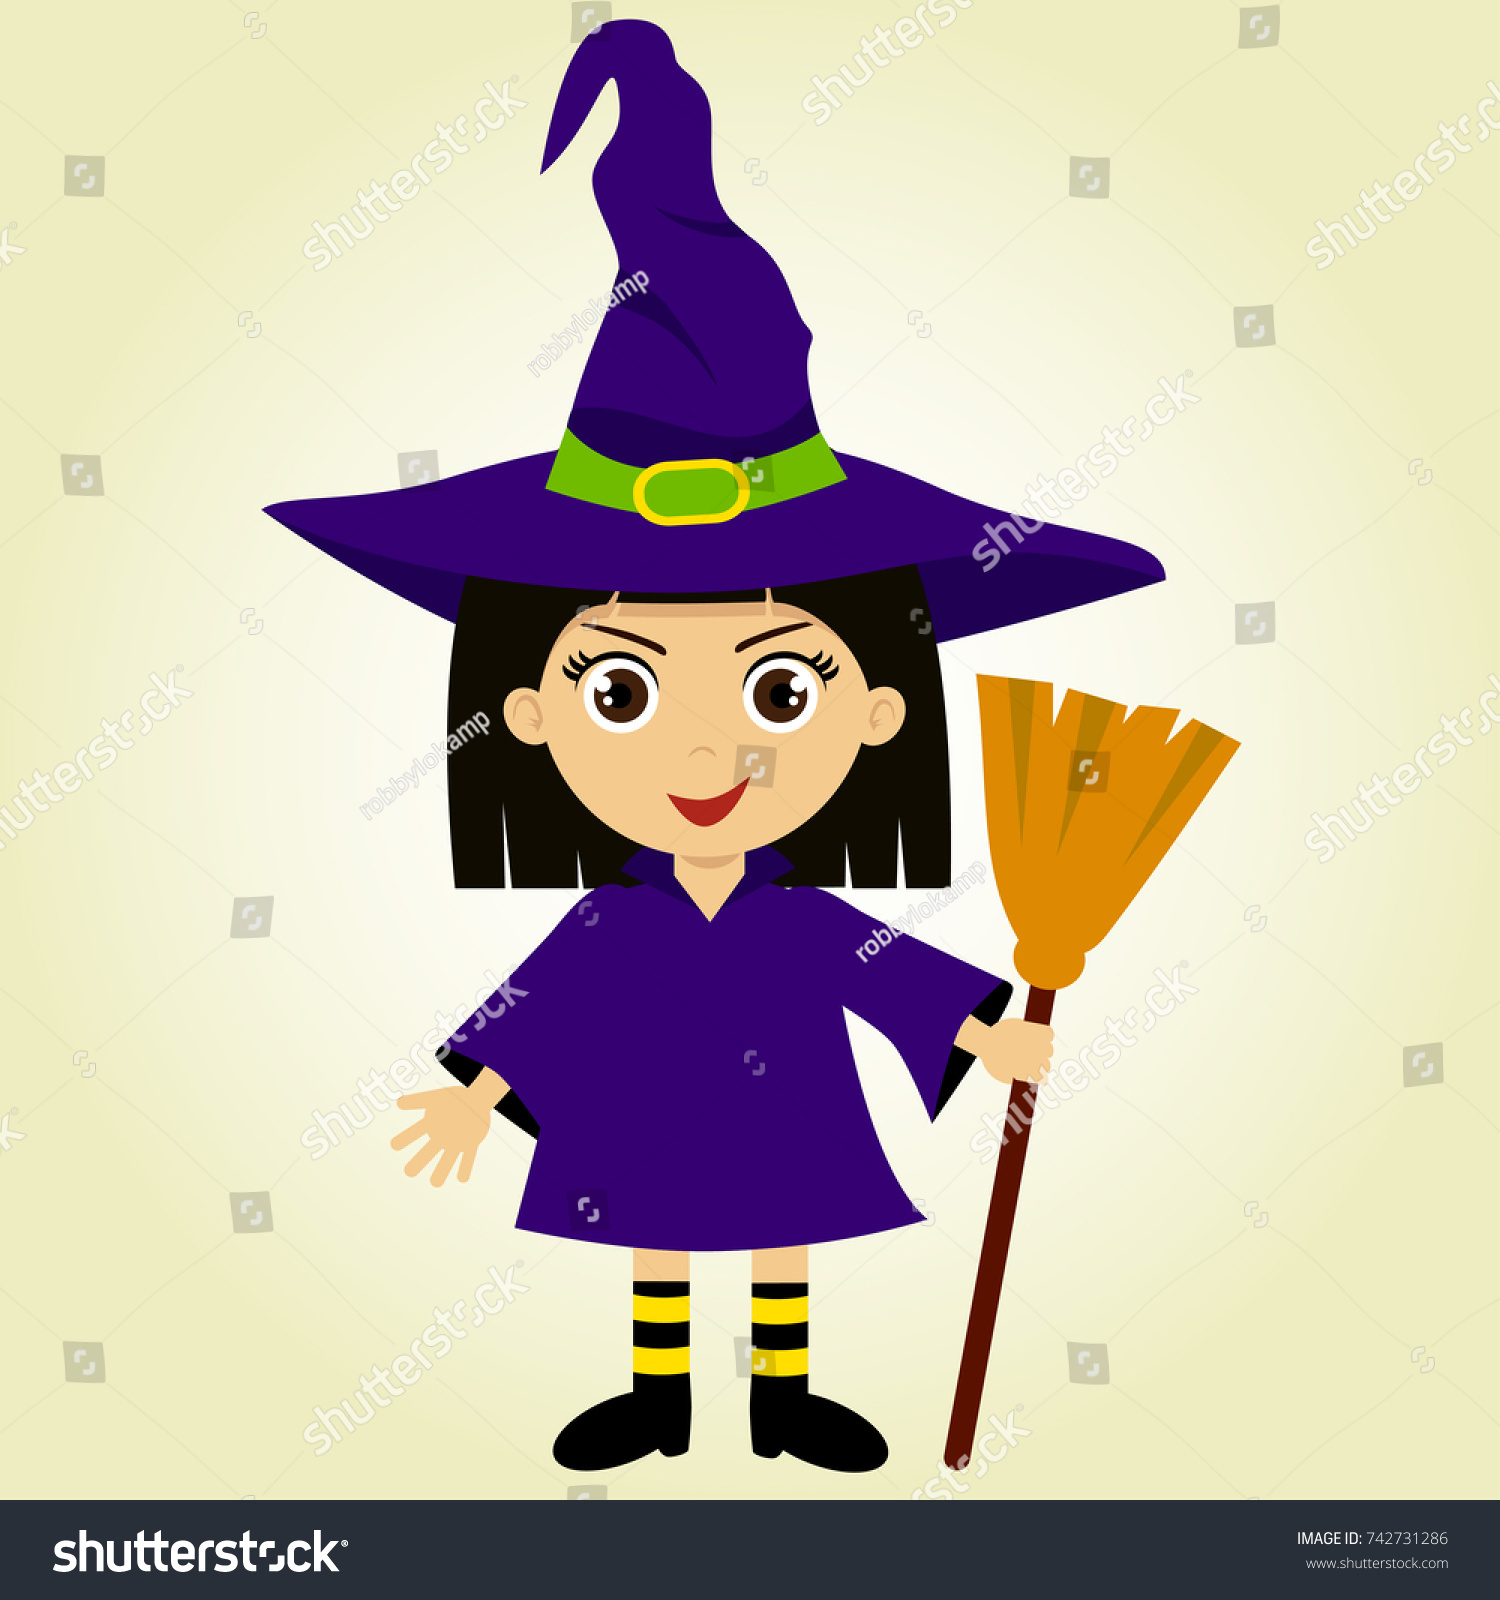 Cute Halloween Costume Lovely Girl Witch Stock Vector Royalty Free 742731286